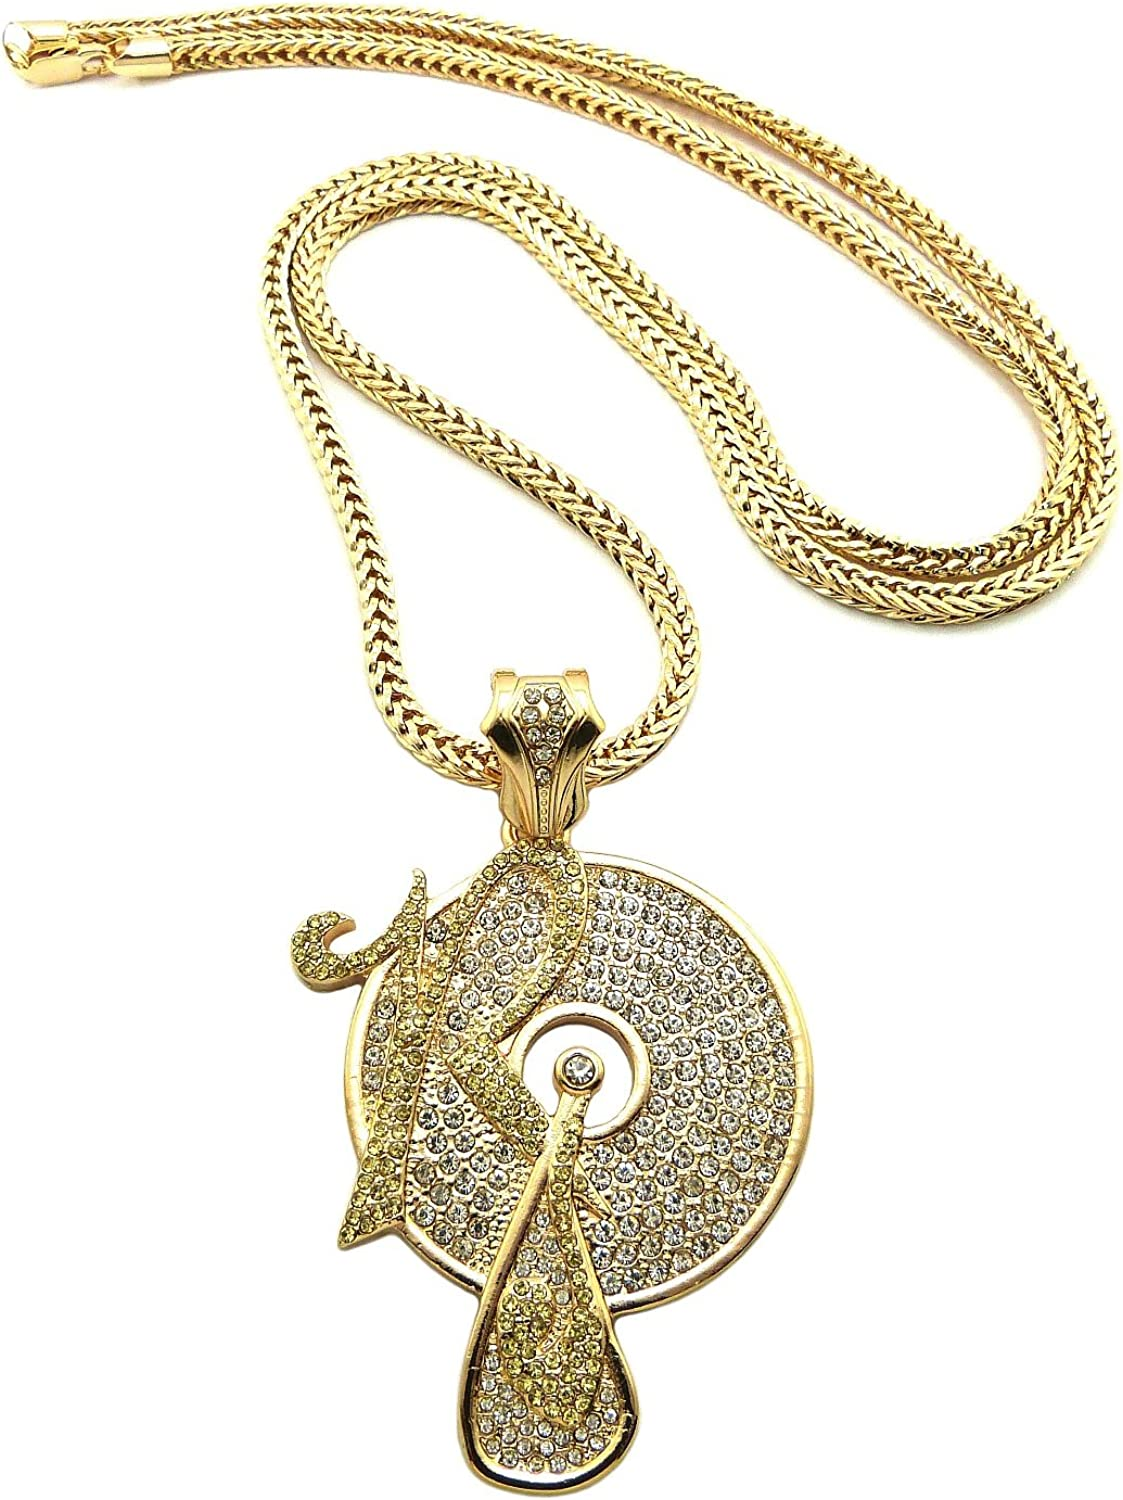 Crescendo SJ INC New Iced Out ROCAFELLA Pendant 4mm/36 Franco Chain Hip Hop Necklace XP931GY